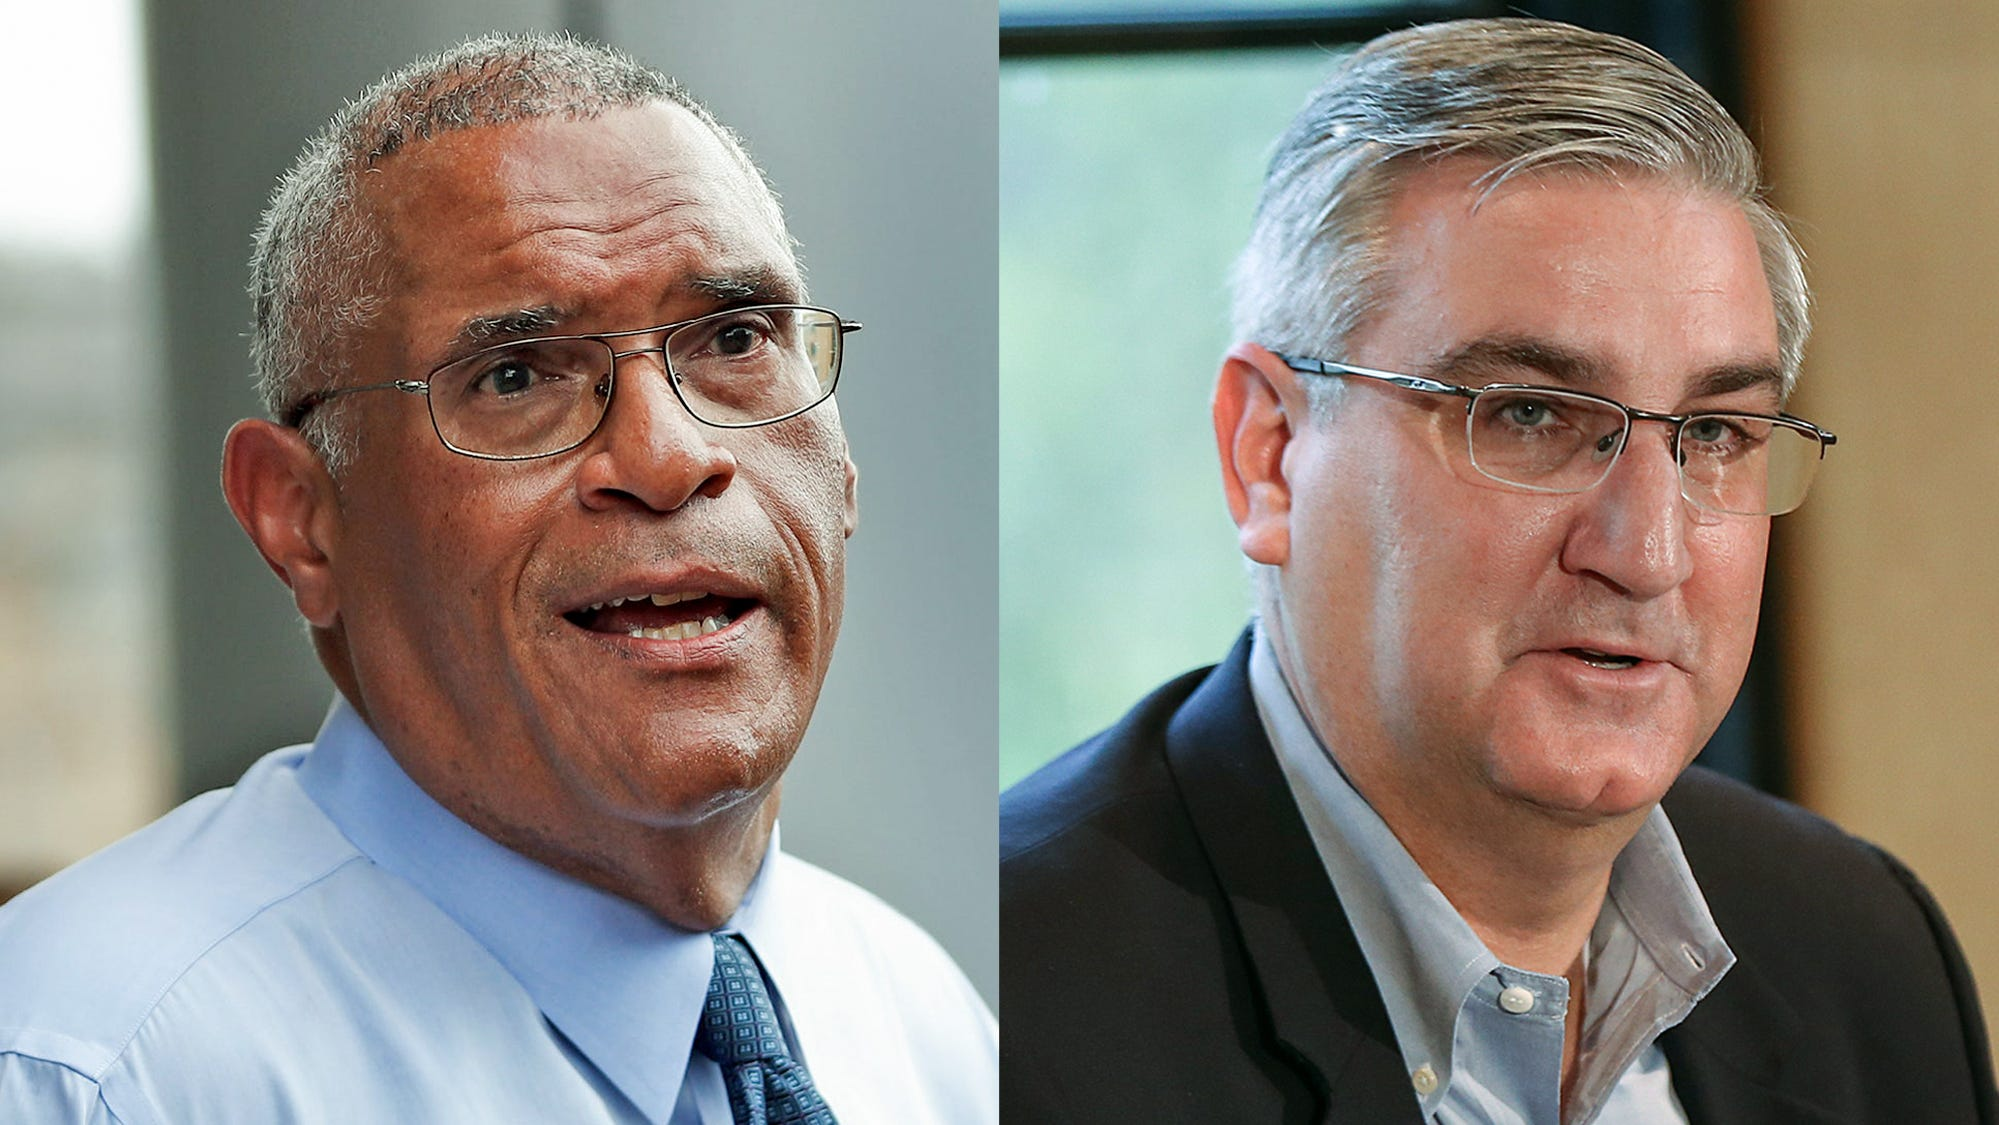 Poll shows Holcomb with comfortable lead